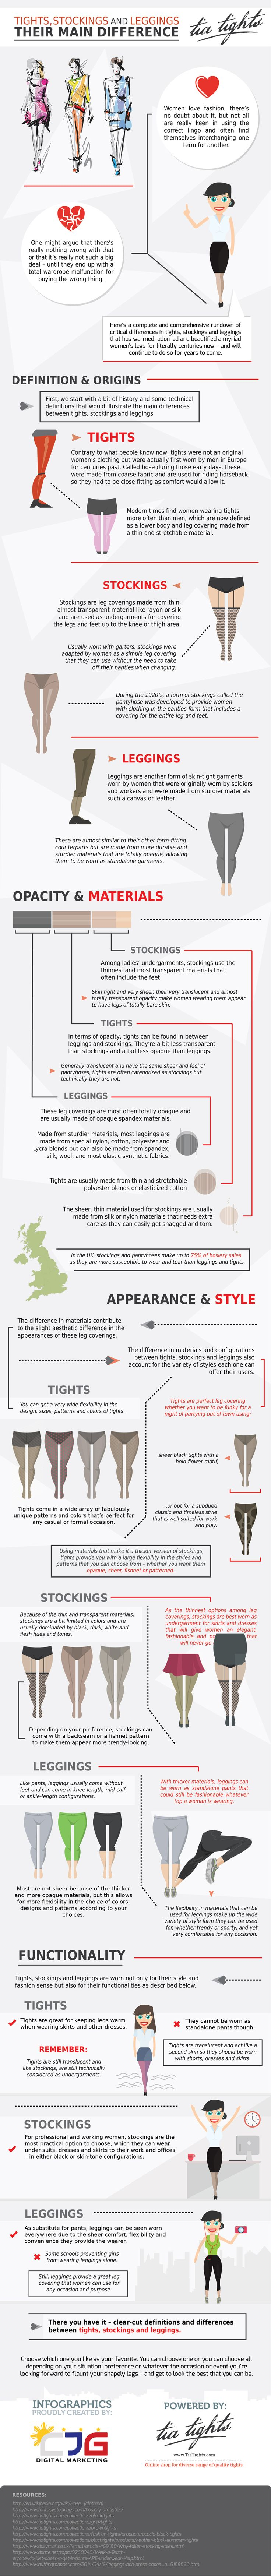 Tights, Stockings and Leggings - Their Main Difference (Infographic)